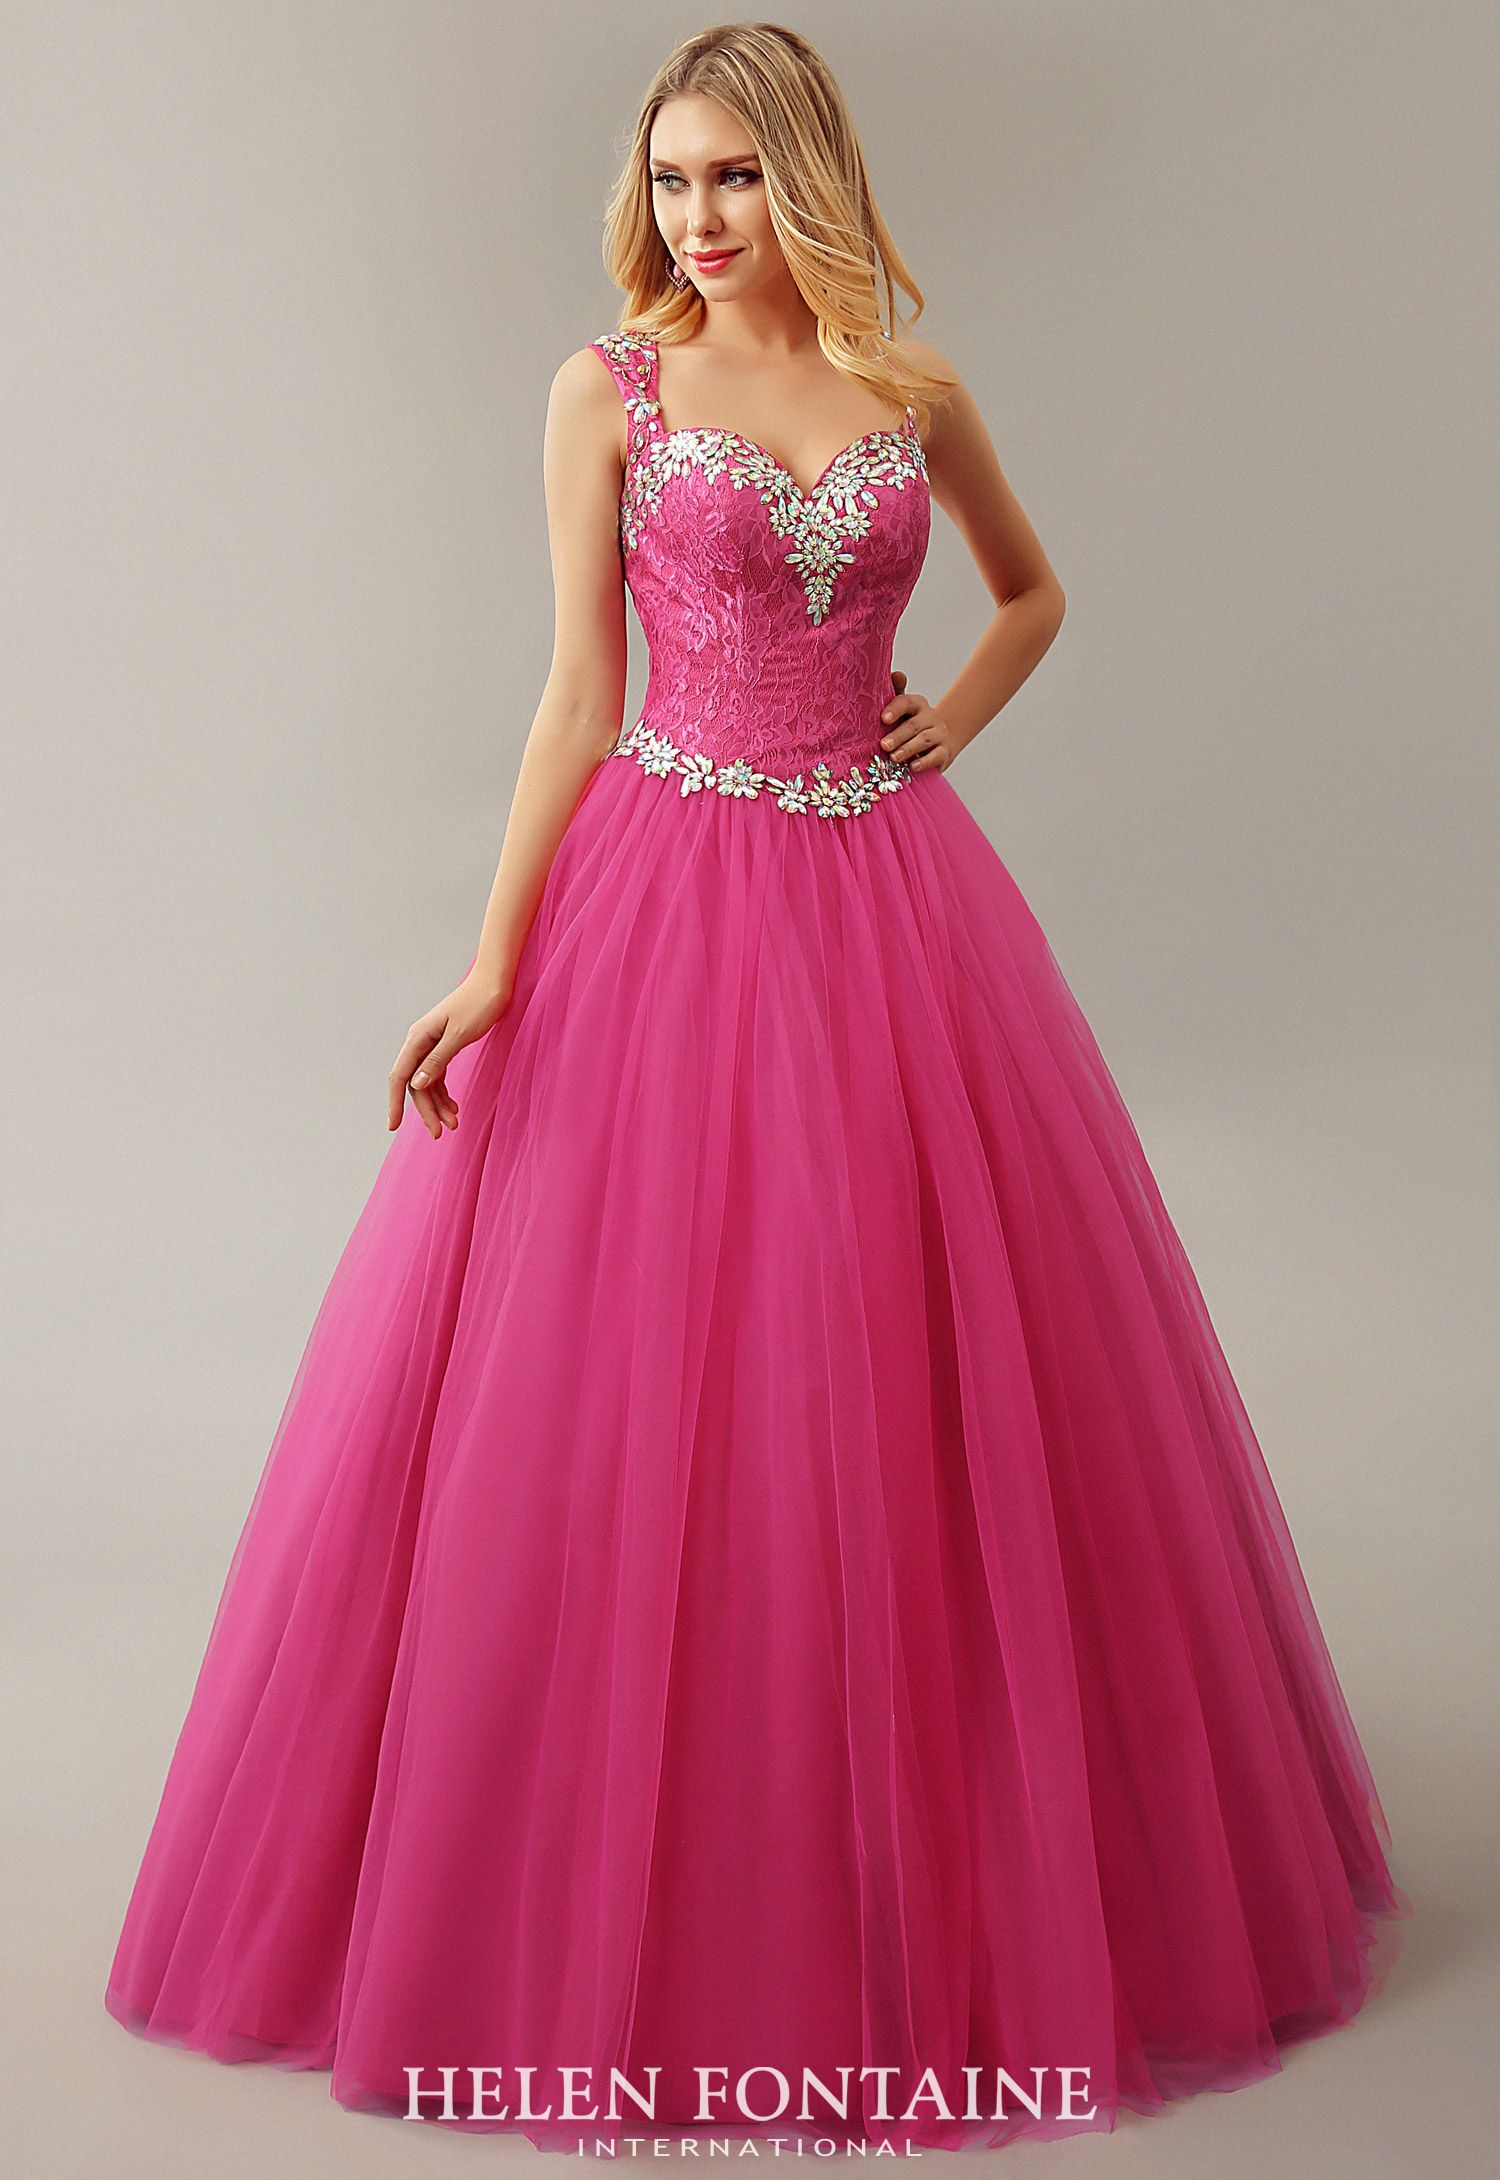 Fuchsia long crystals tulle corset ball gown princess prom dresses